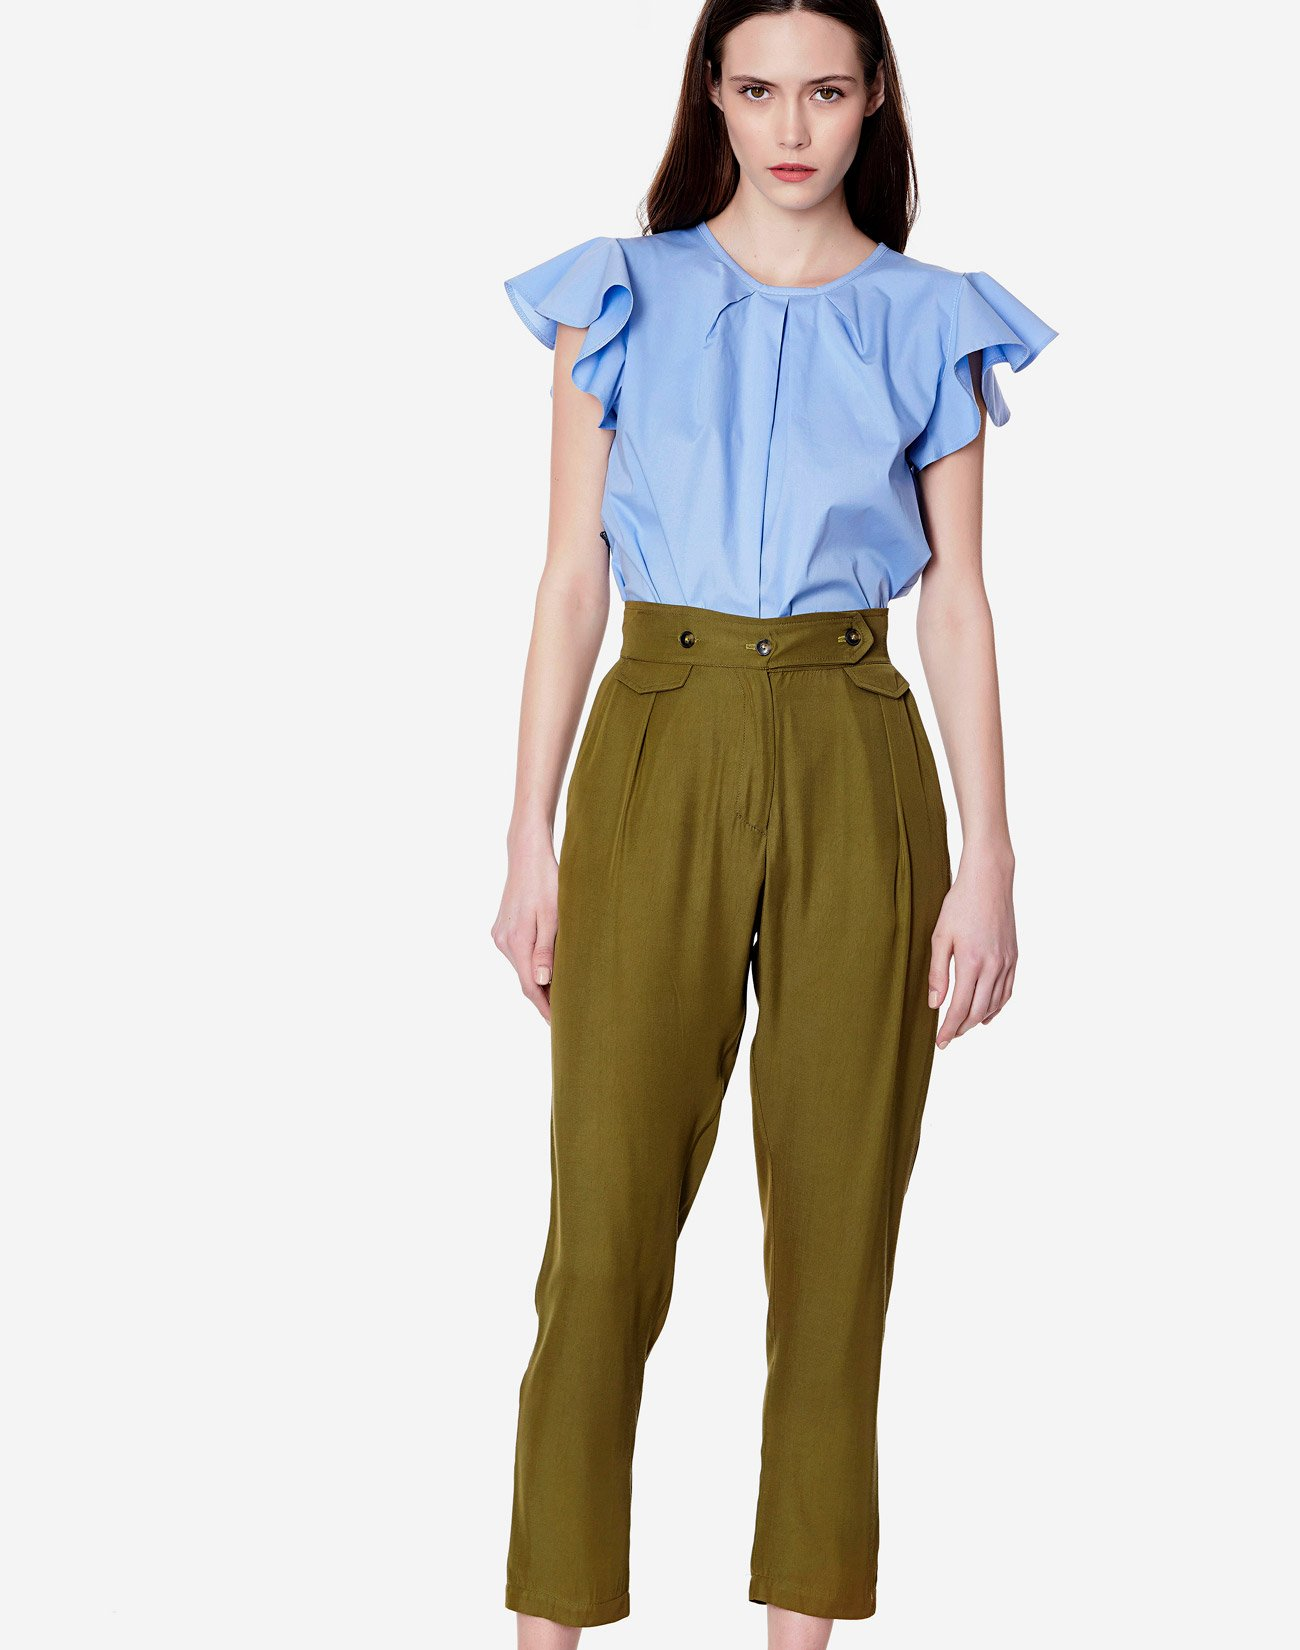 High waist trousers with buttons